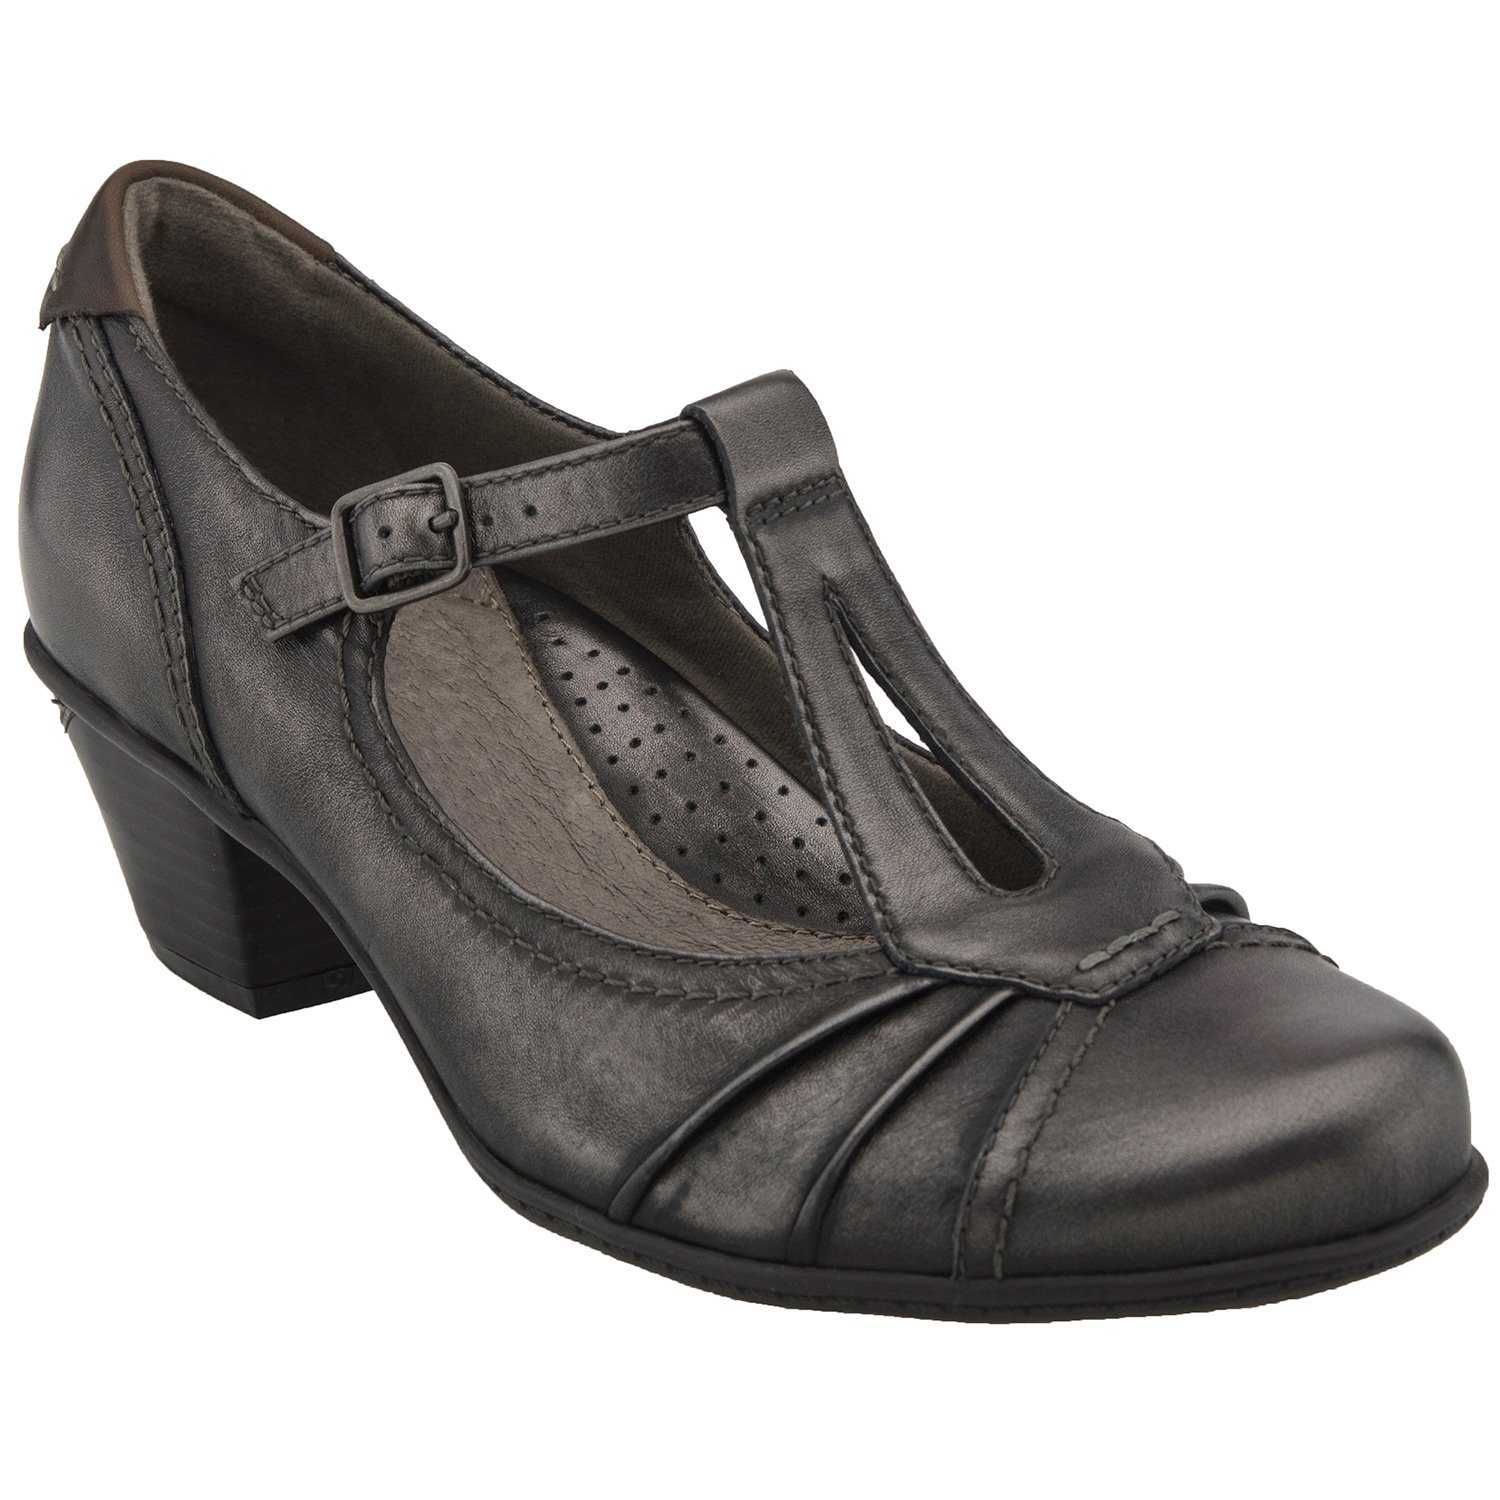 Earth Women's Wanderlust Pewter Metallic Leather 9.5 D US by Earth (Image #1)